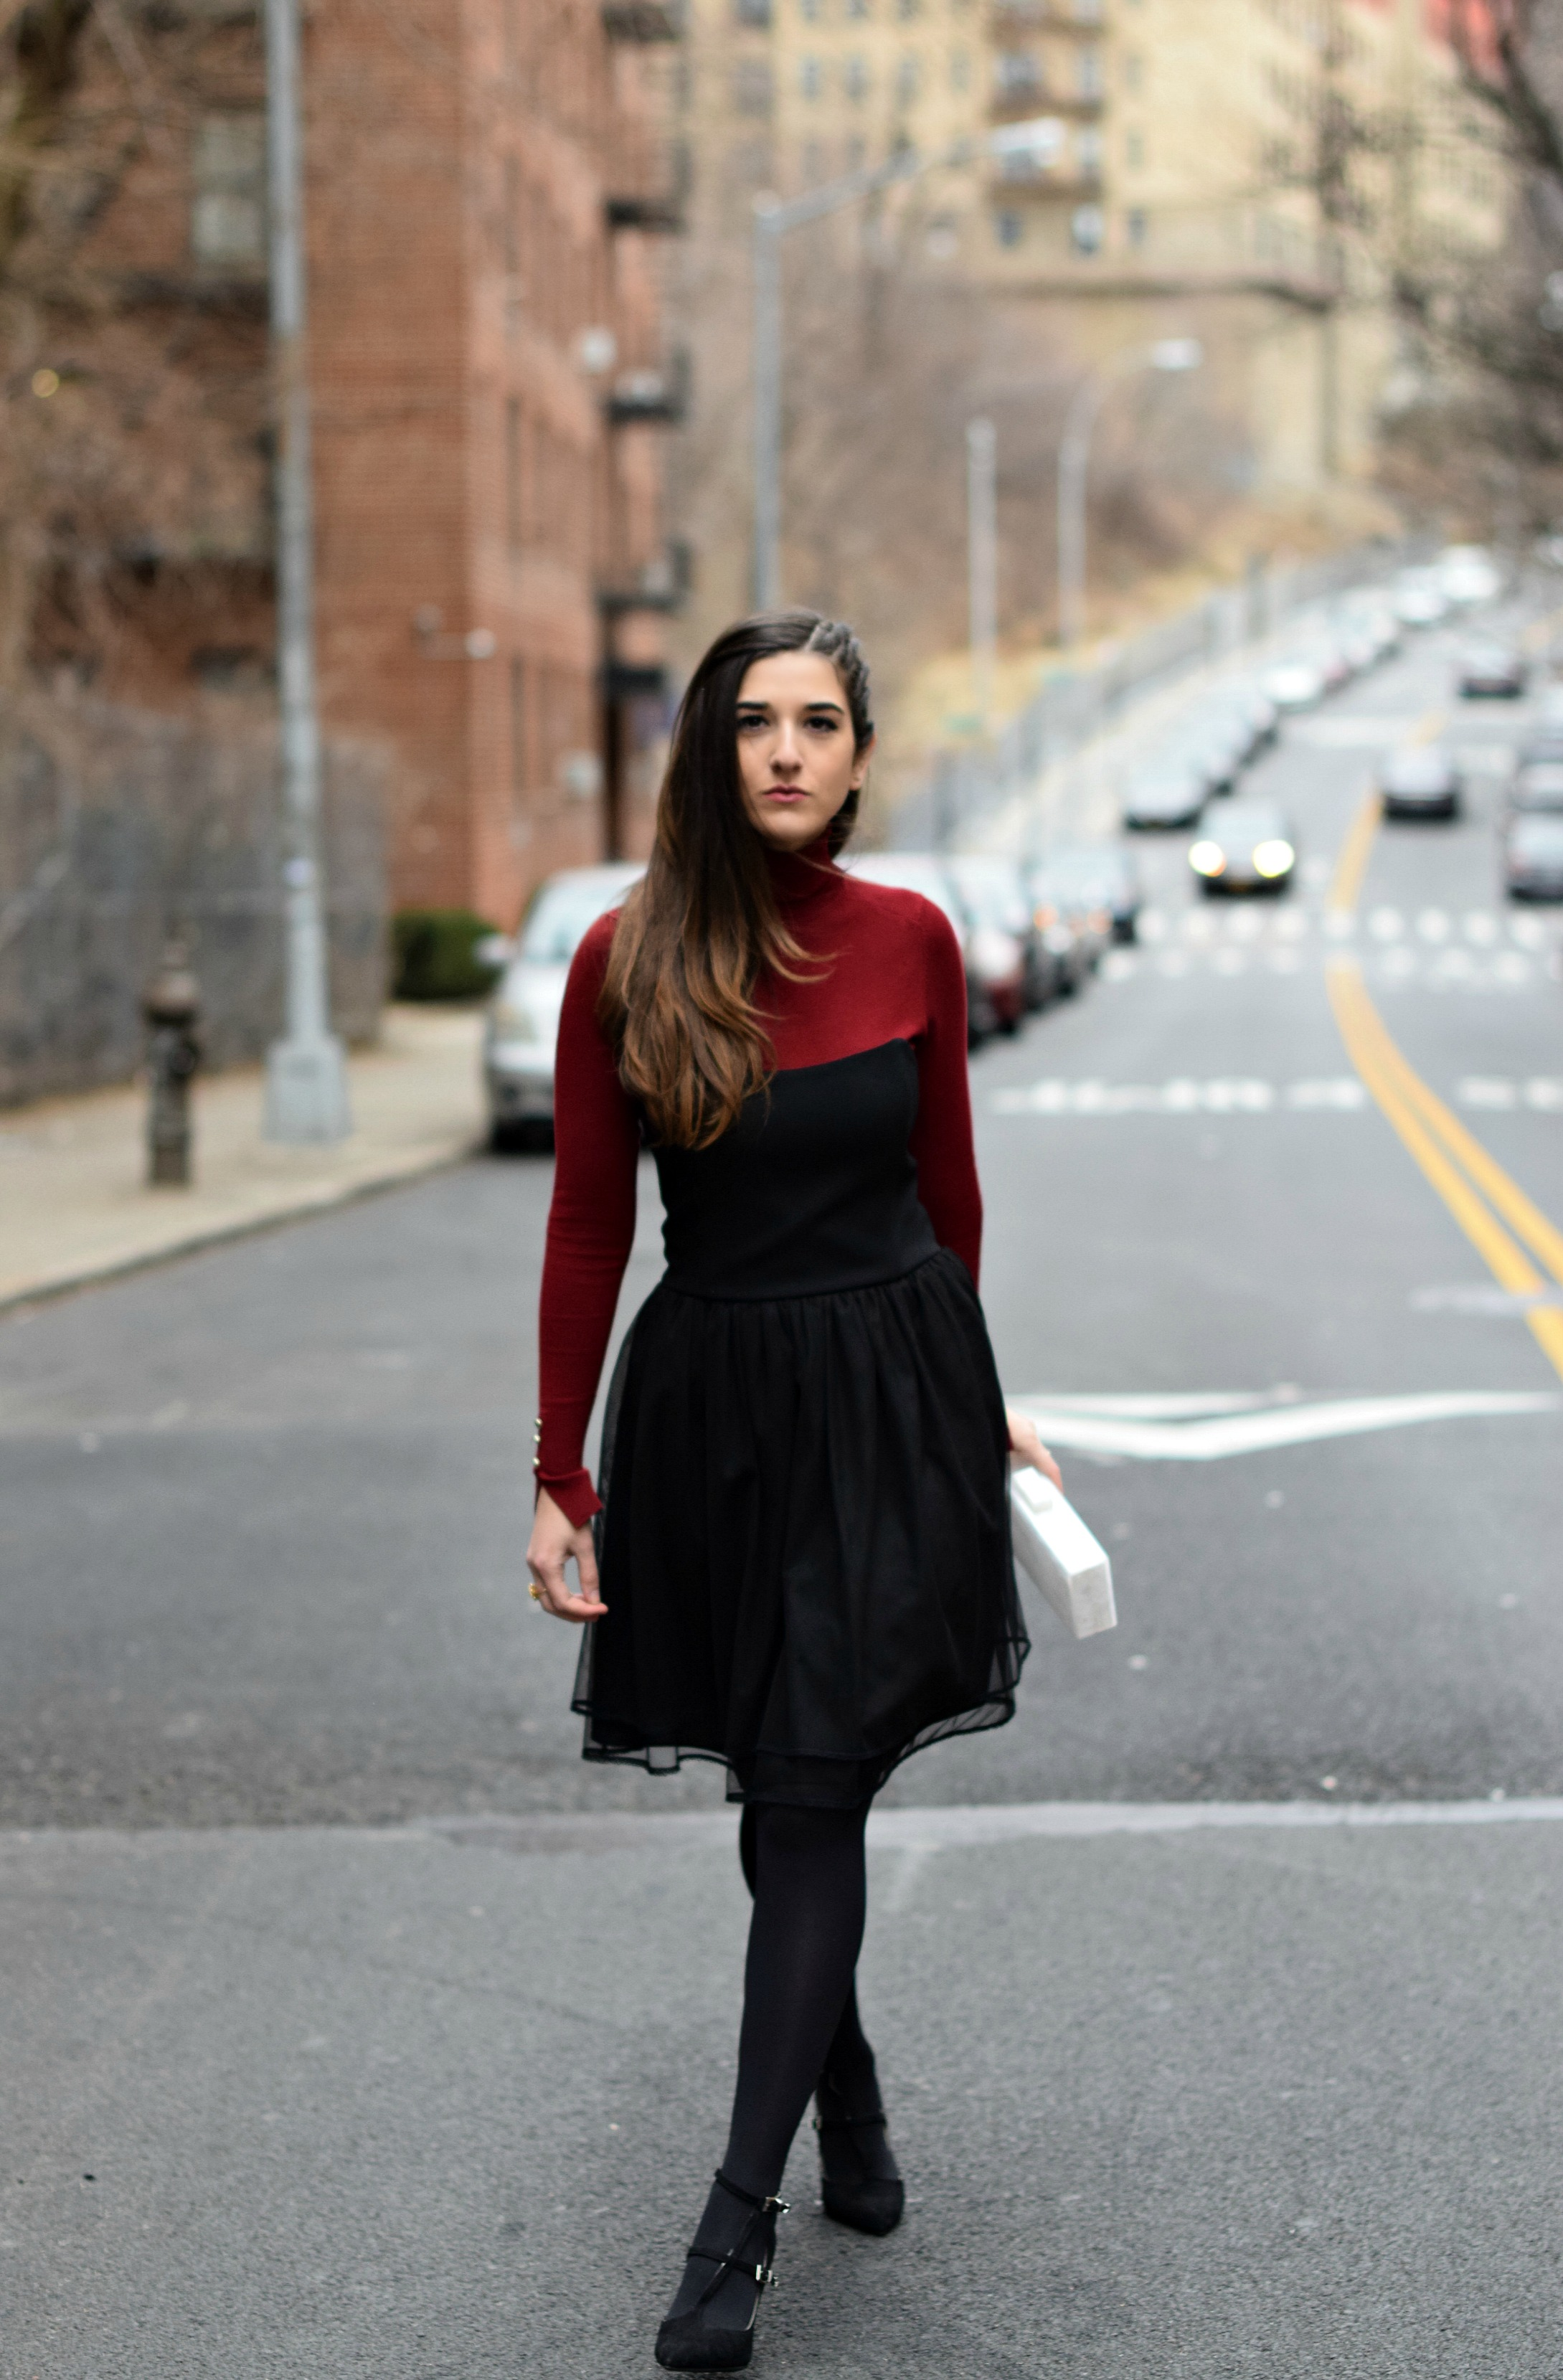 Red Turtleneck Under Strapless Dress Louboutins & Love Fashion Blog Esther Santer NYC Street Style Blogger Black Tights Name Monogrammed Clutch Hair Beautiful Inspo Model Photoshoot Shoes Heels Zara Outfit OOTD Women Girl Shopping Winter New York City.jpg